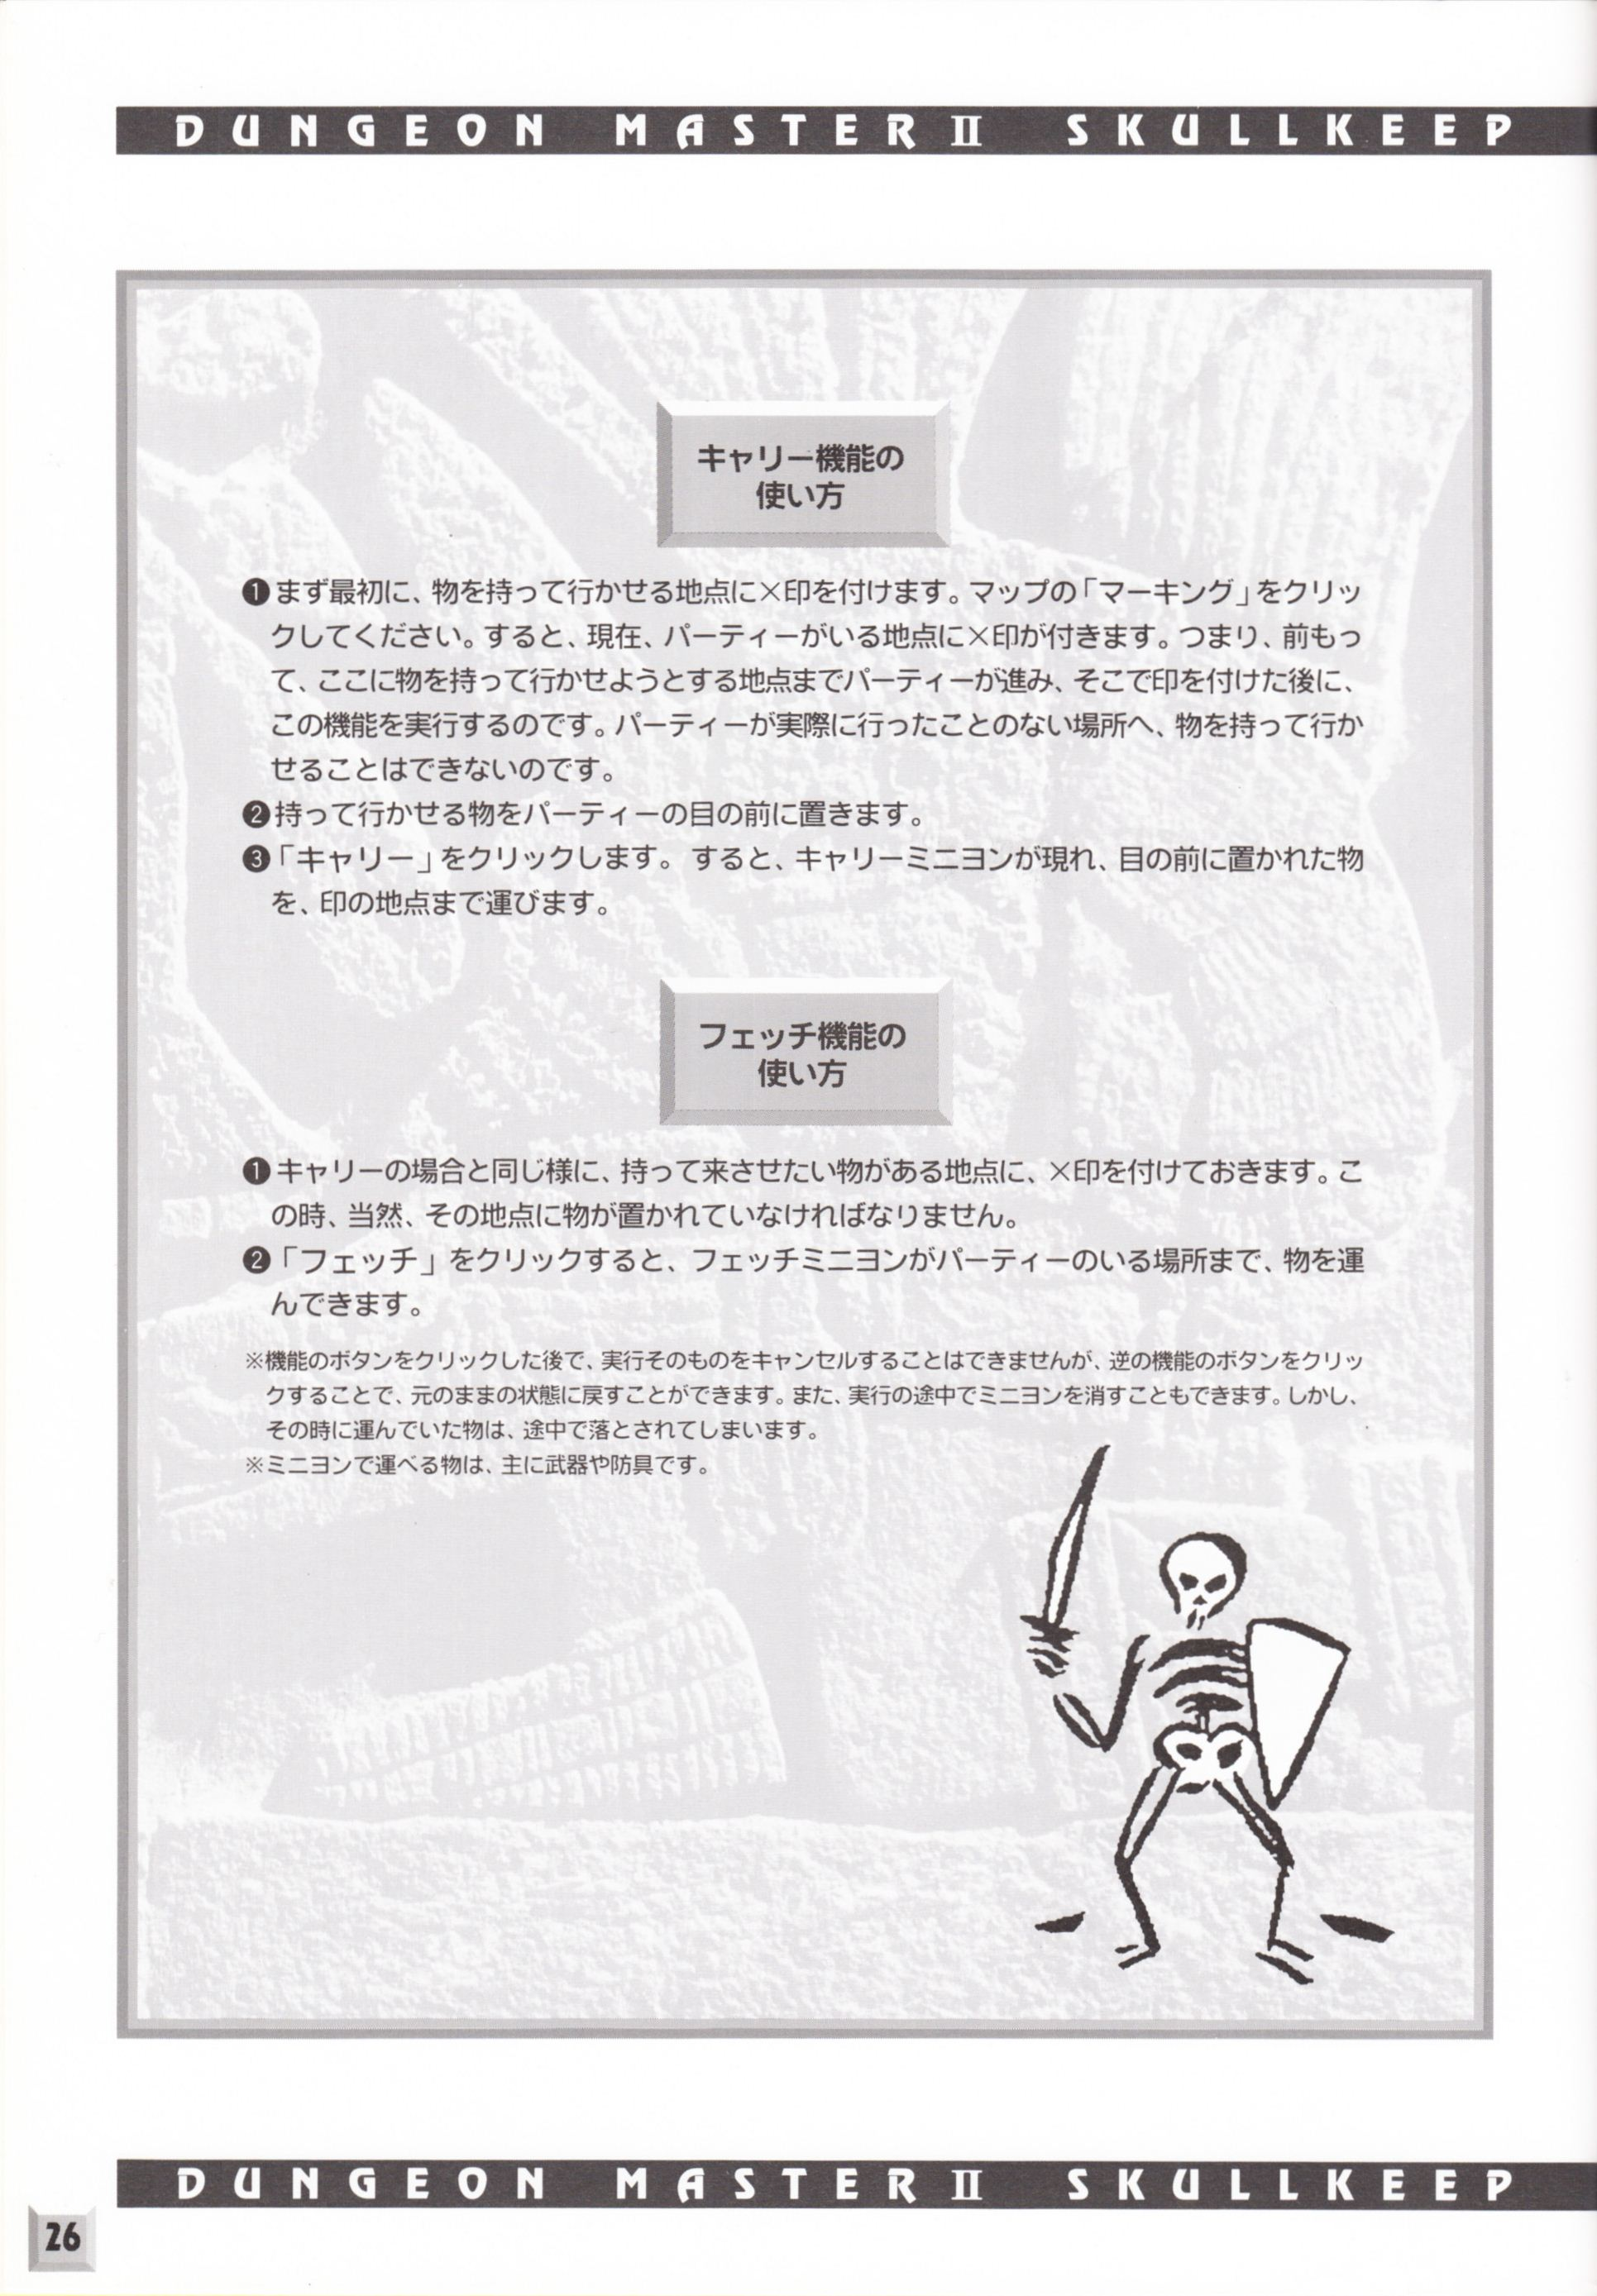 Game - Dungeon Master II - JP - PC-9801 - 3.5-inch - An Operation Manual - Page 028 - Scan